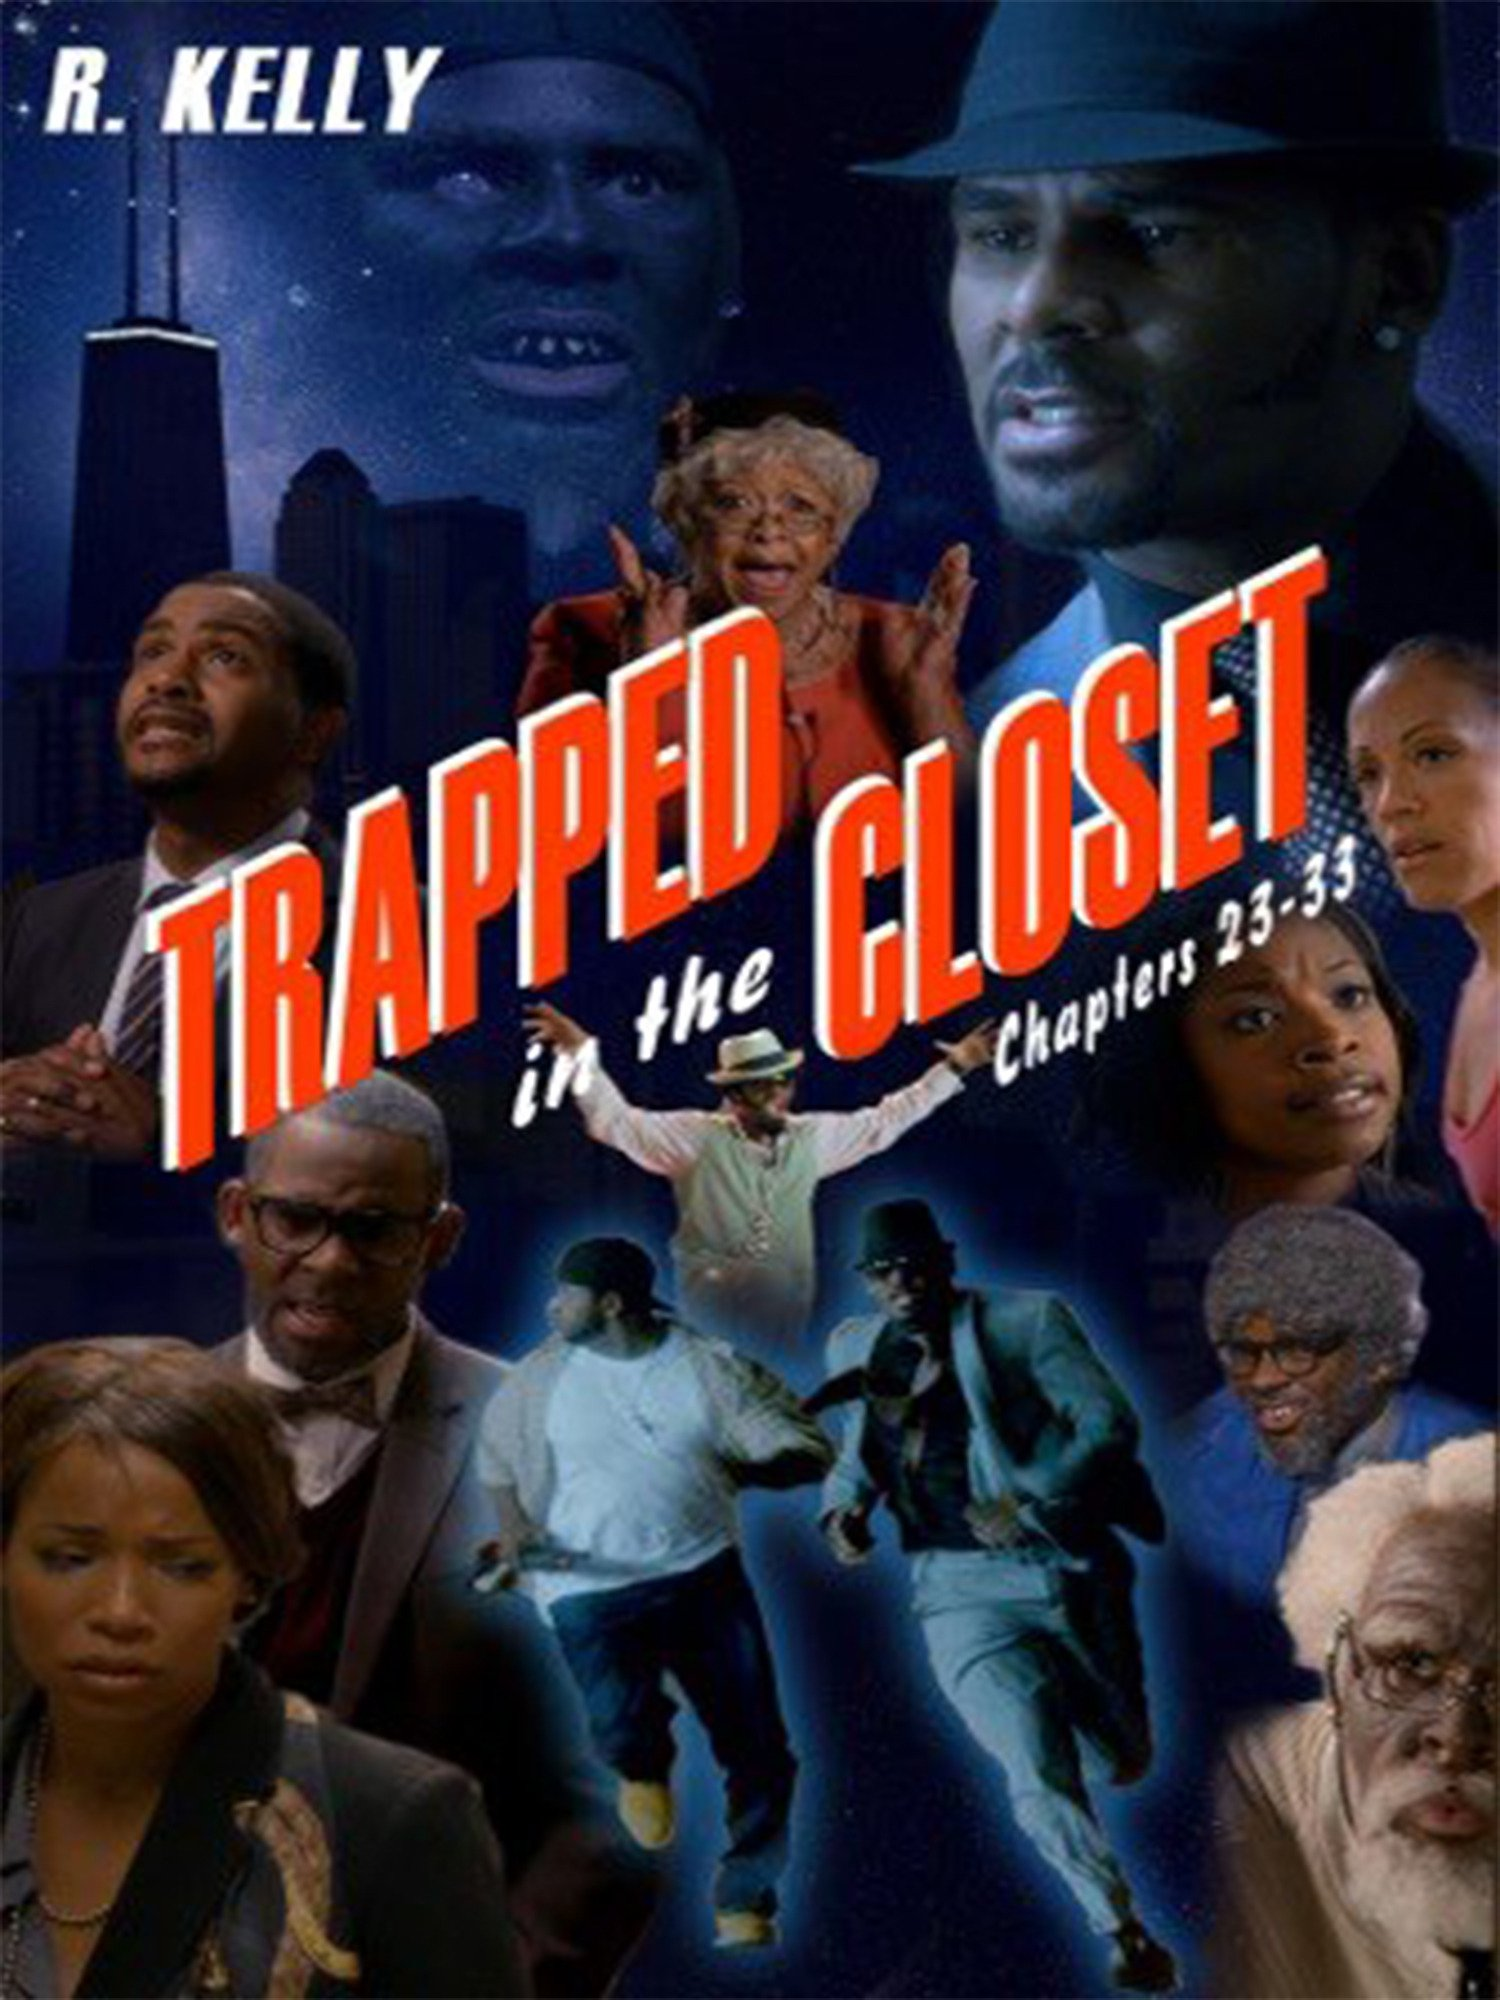 Amazon Com R Kelly Trapped In The Closet Chapters 23 33 R Kelly